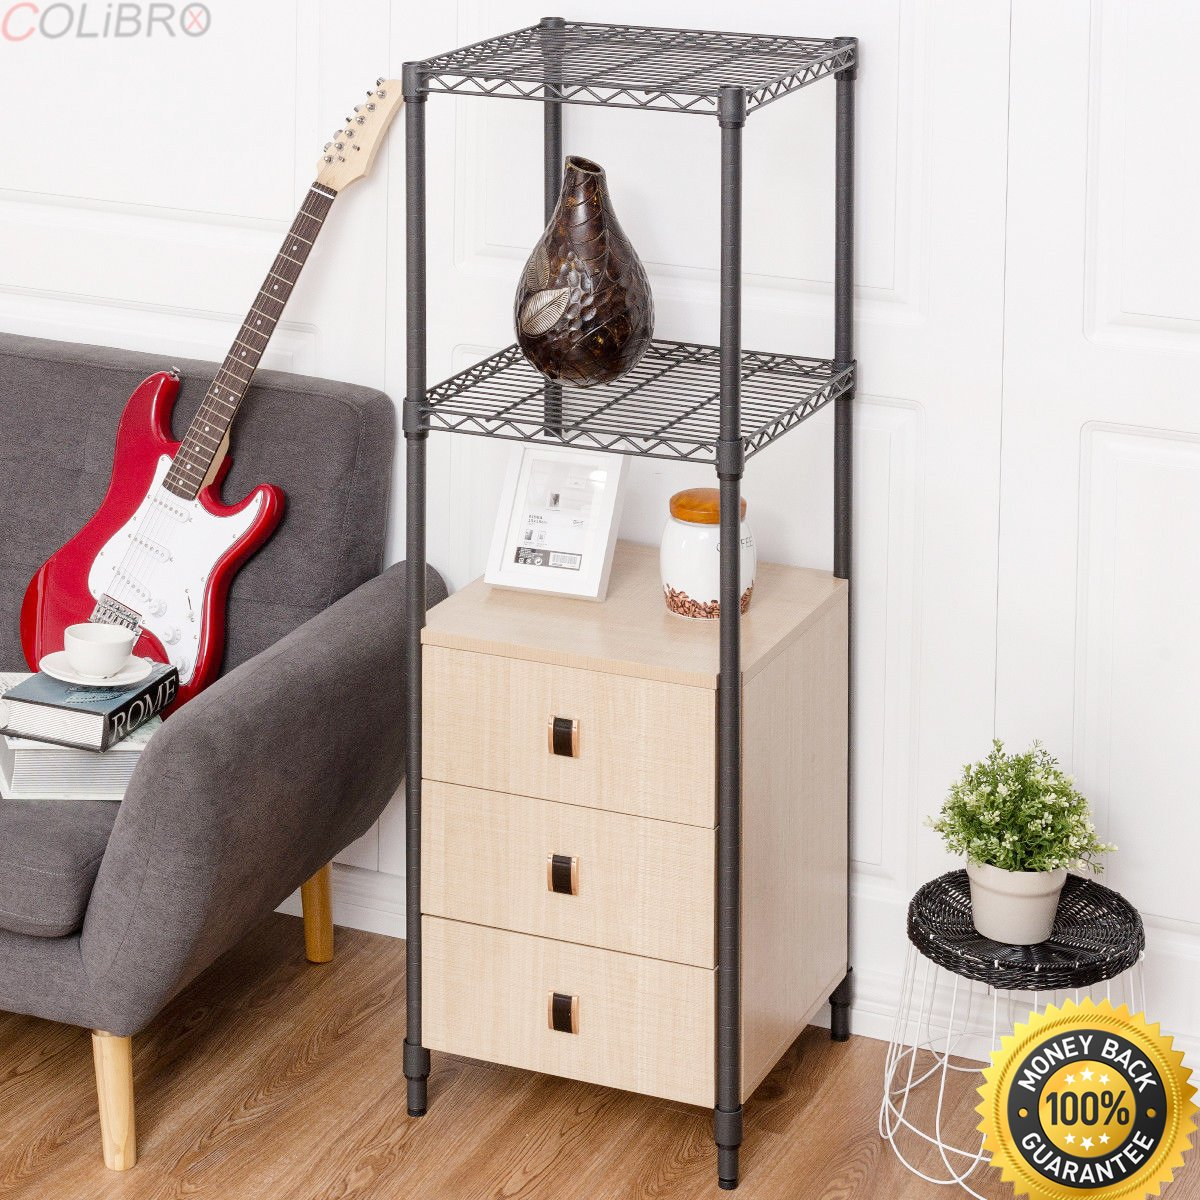 COLIBROX--Steel Frame Storage Tower Floor Cabinet Unit Freestanding Bath 3 Drawers Shelf. wall shelves with drawers. steelcase universal storage cabinet. steelcase shelf. steelcase cabinet parts.